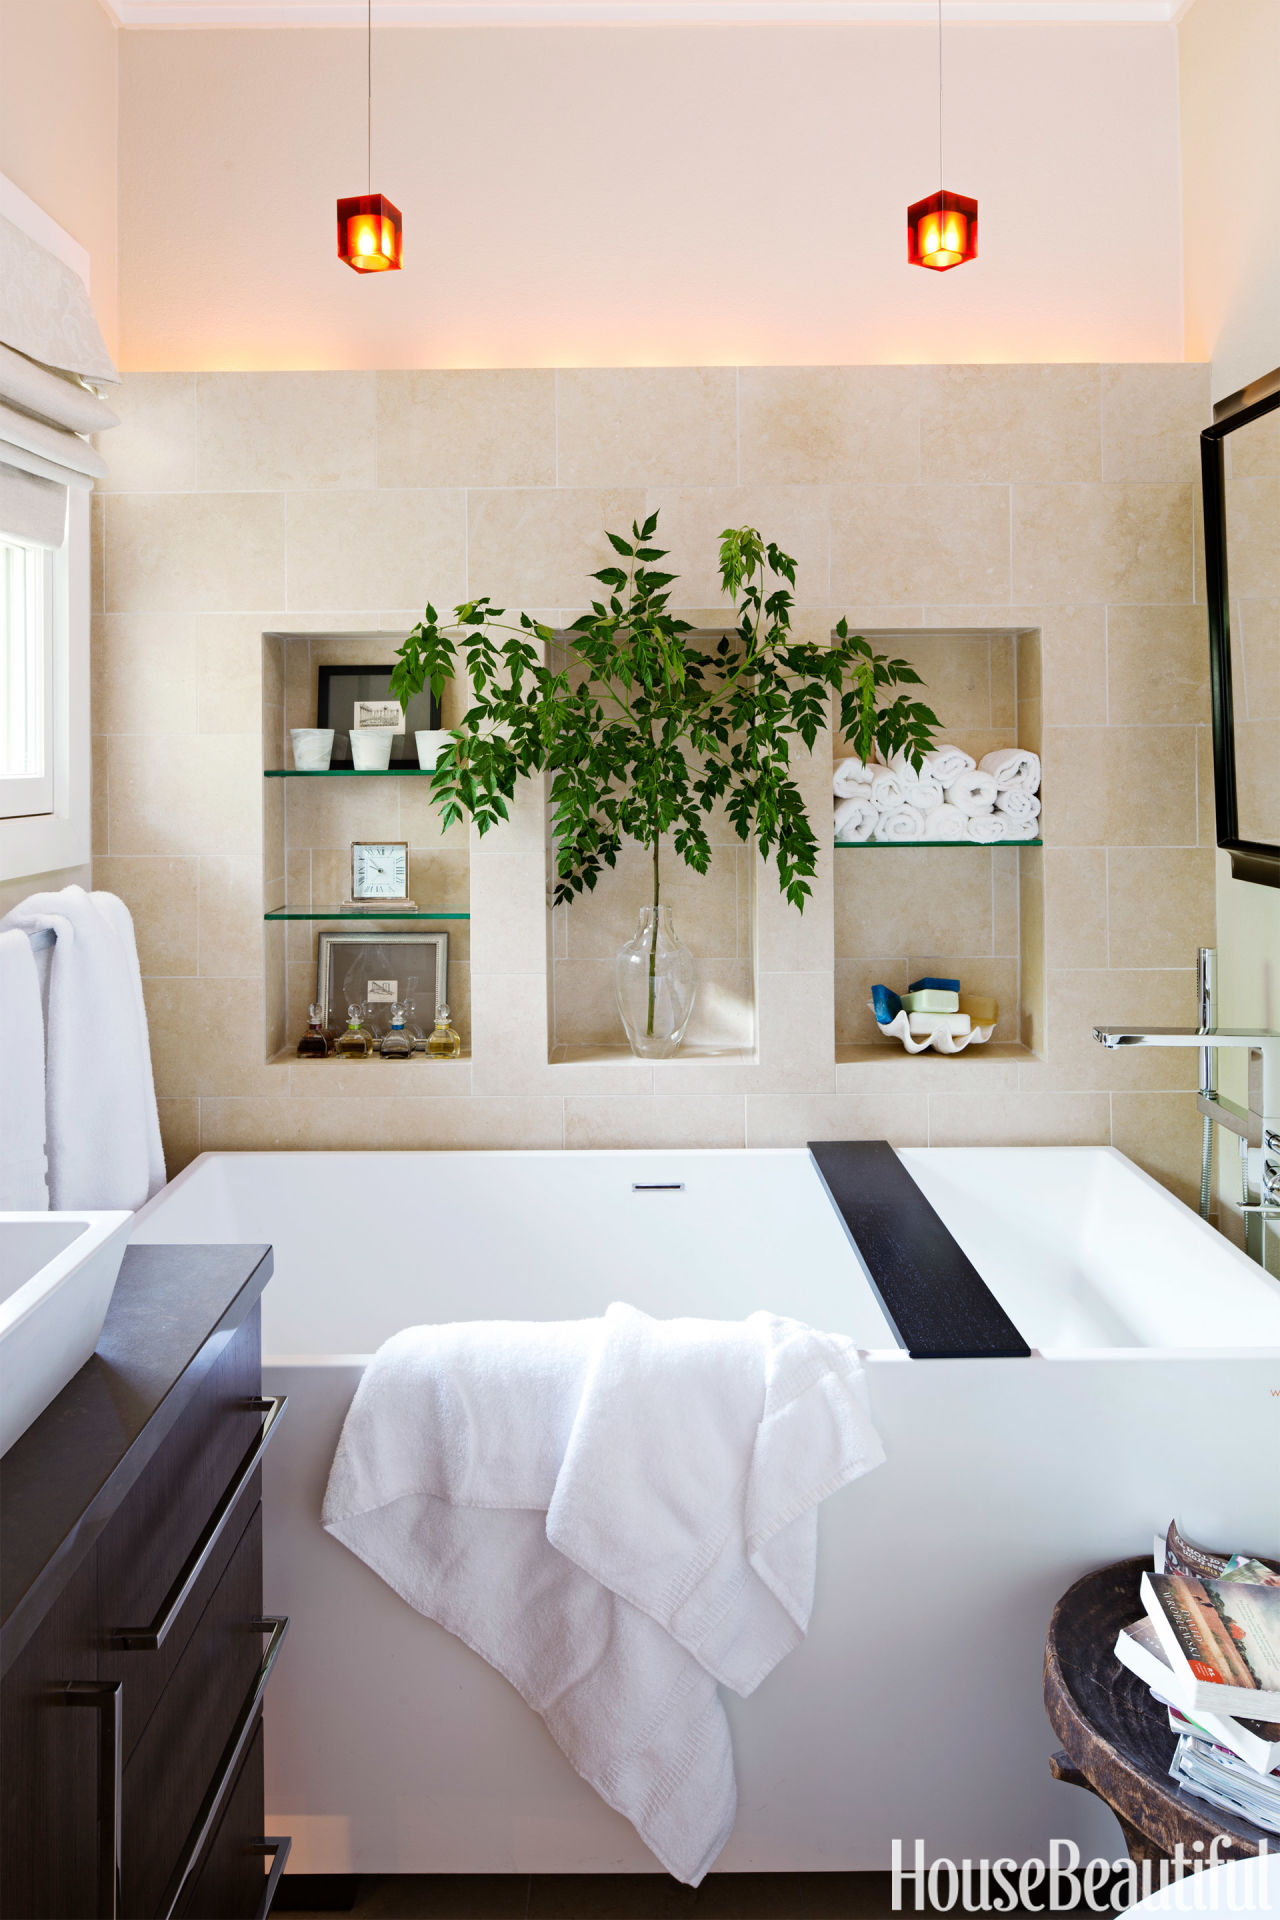 42 Square Foot Bathroom Small Spa Bathroom